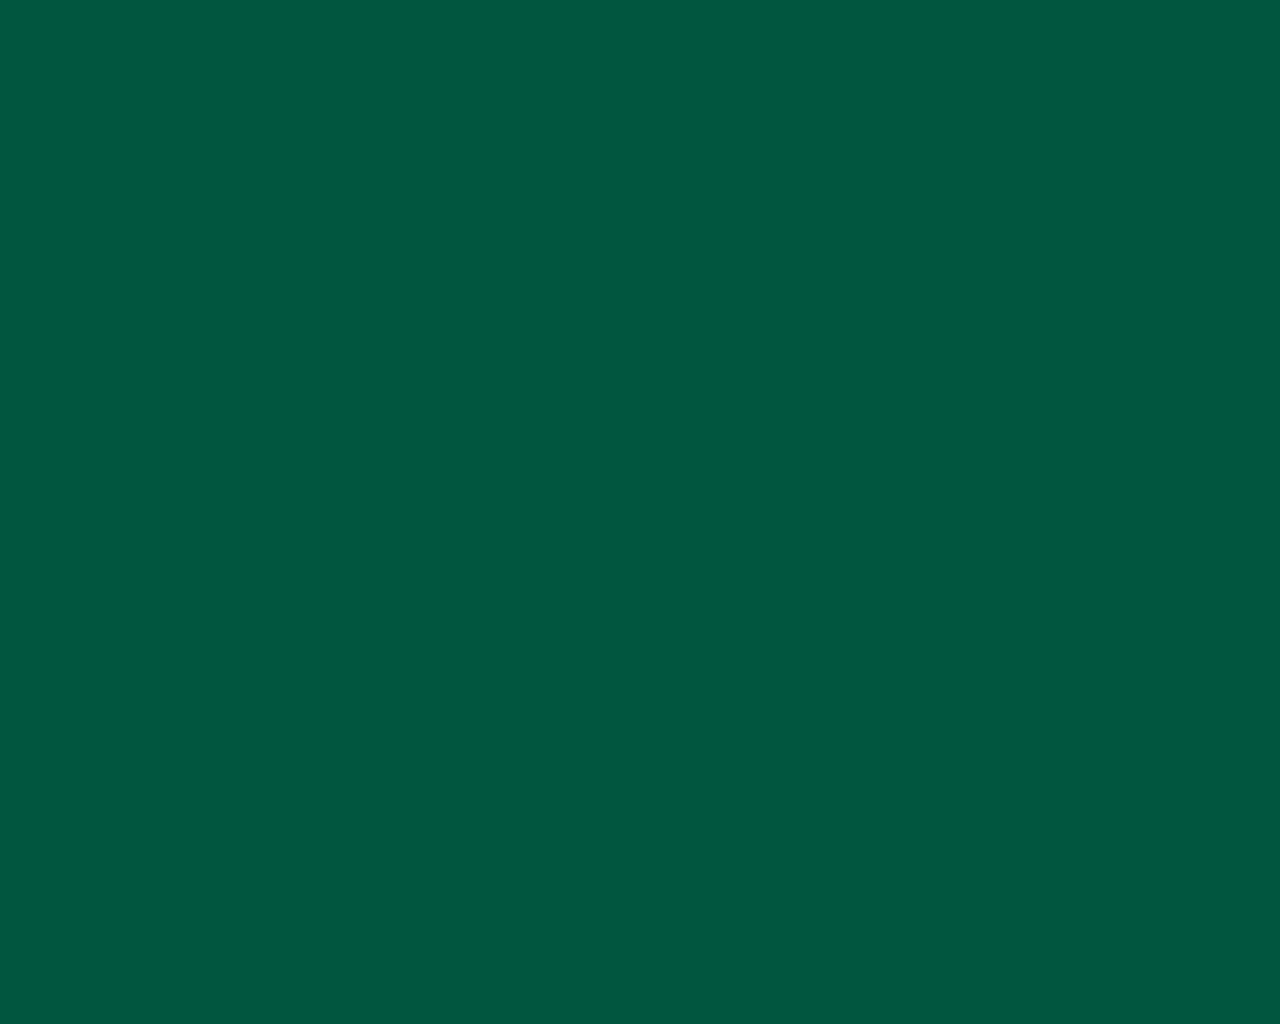 1280x1024 Sacramento State Green Solid Color Background